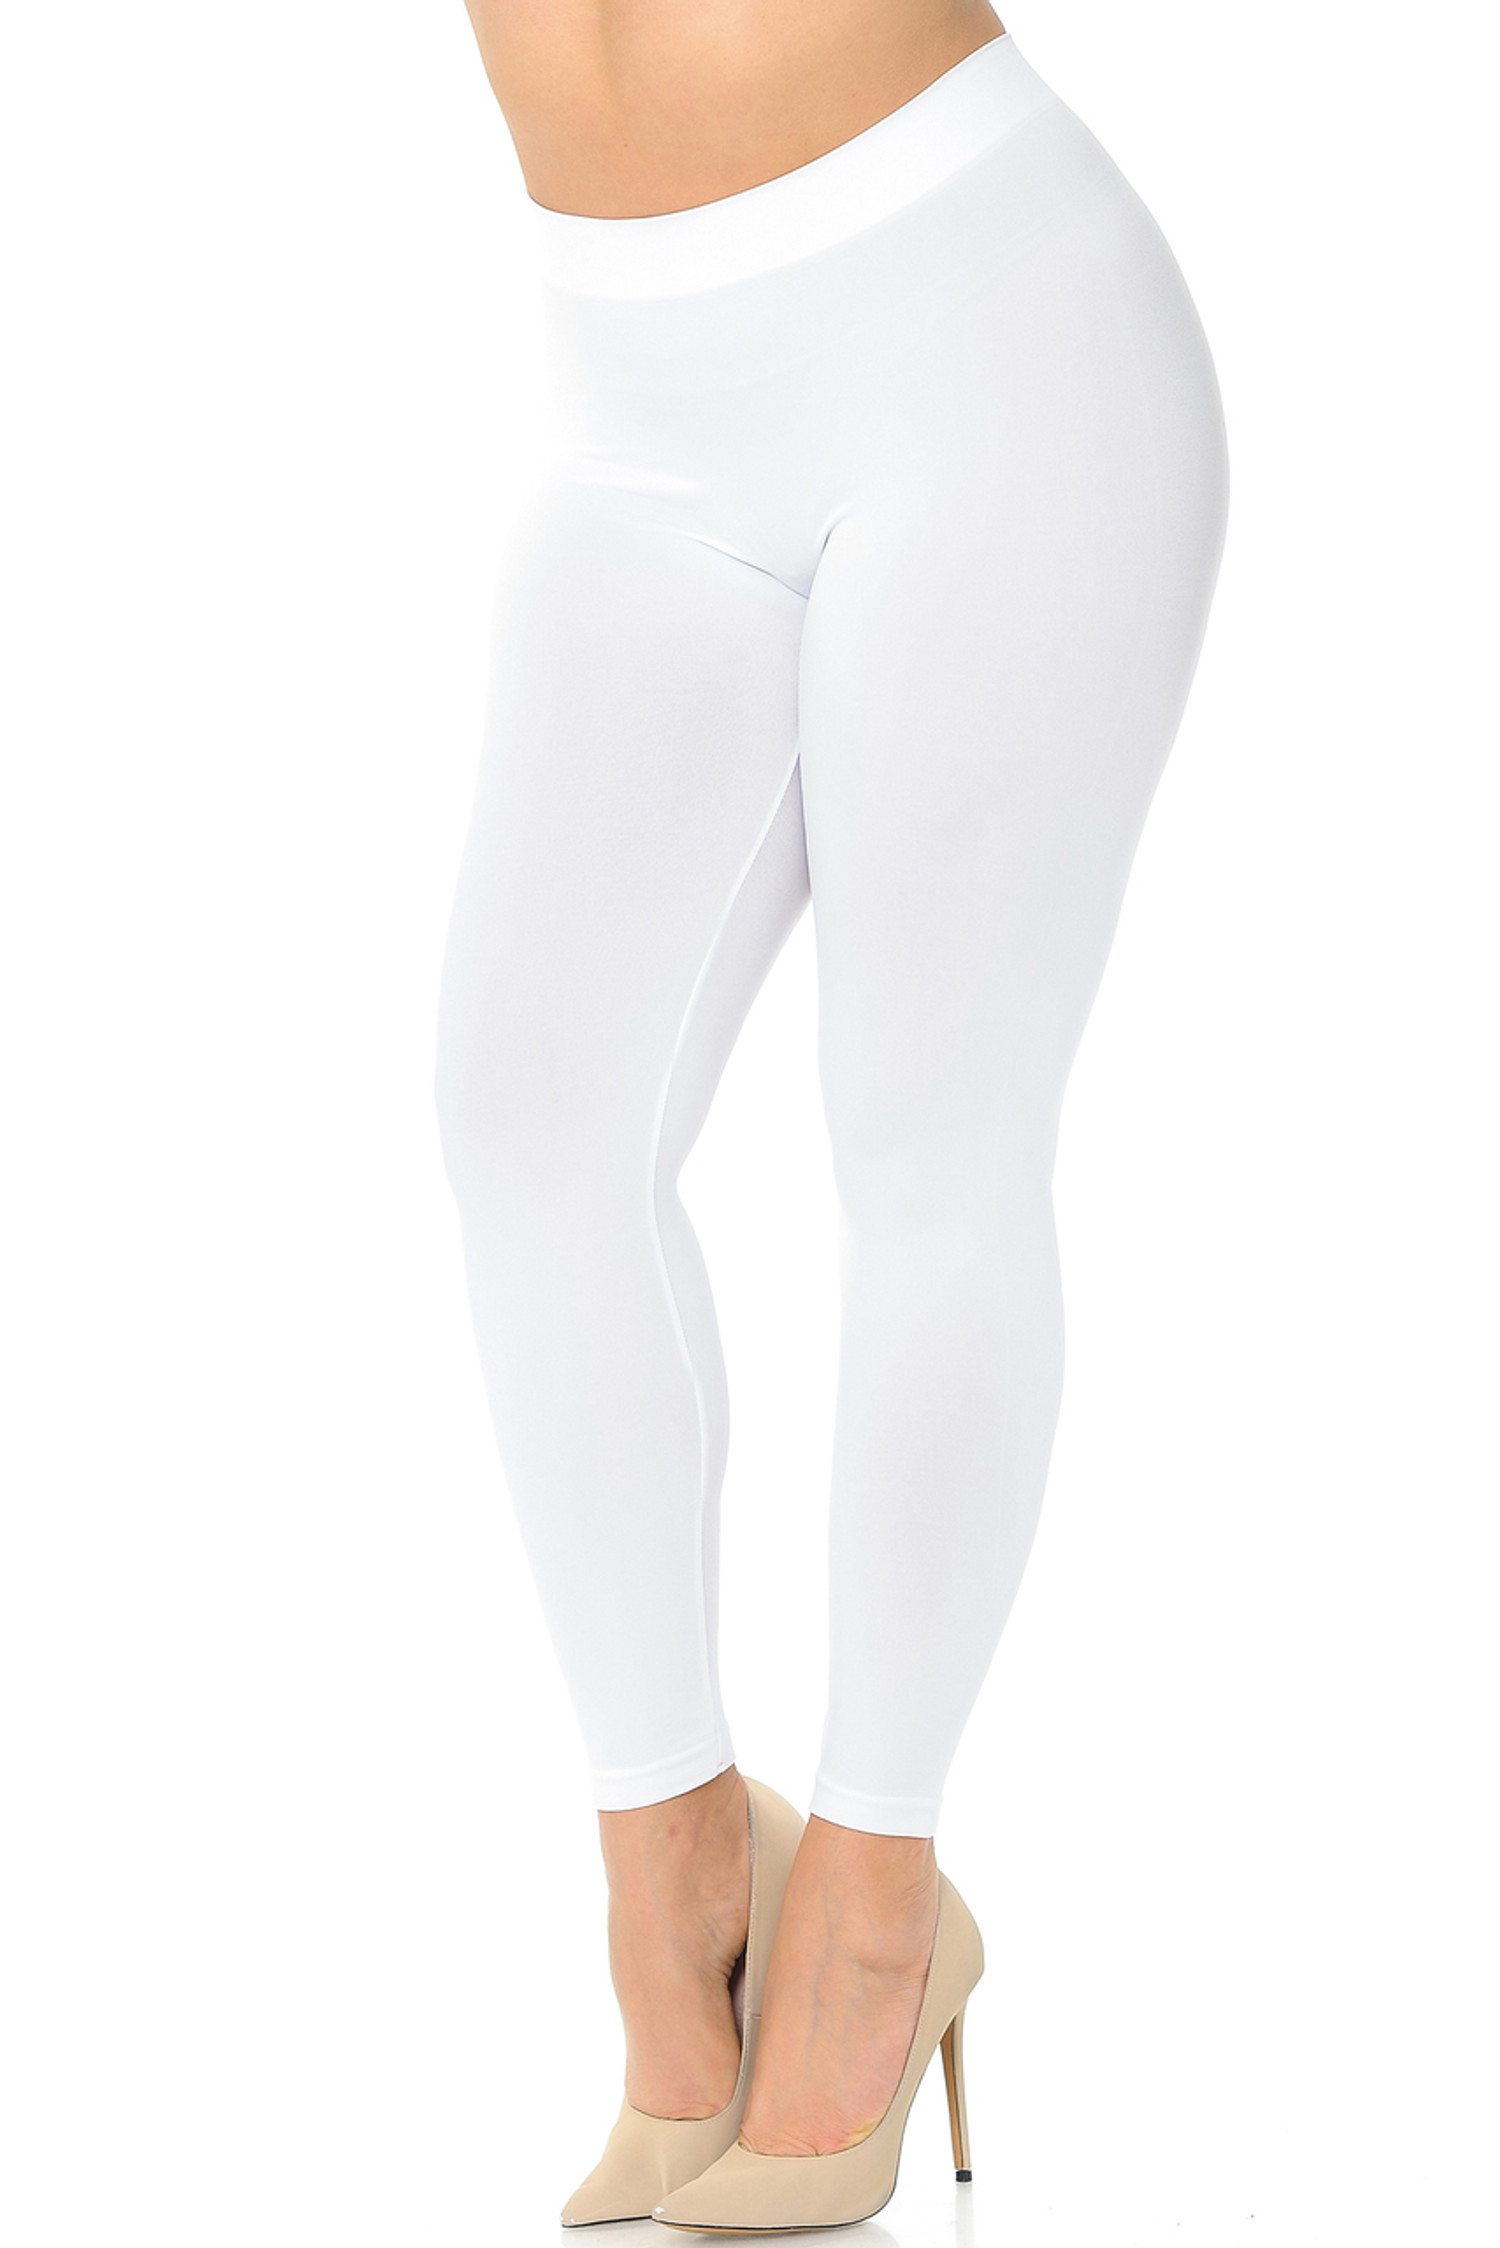 Nylon Spandex Solid Basic Plus Size Leggings